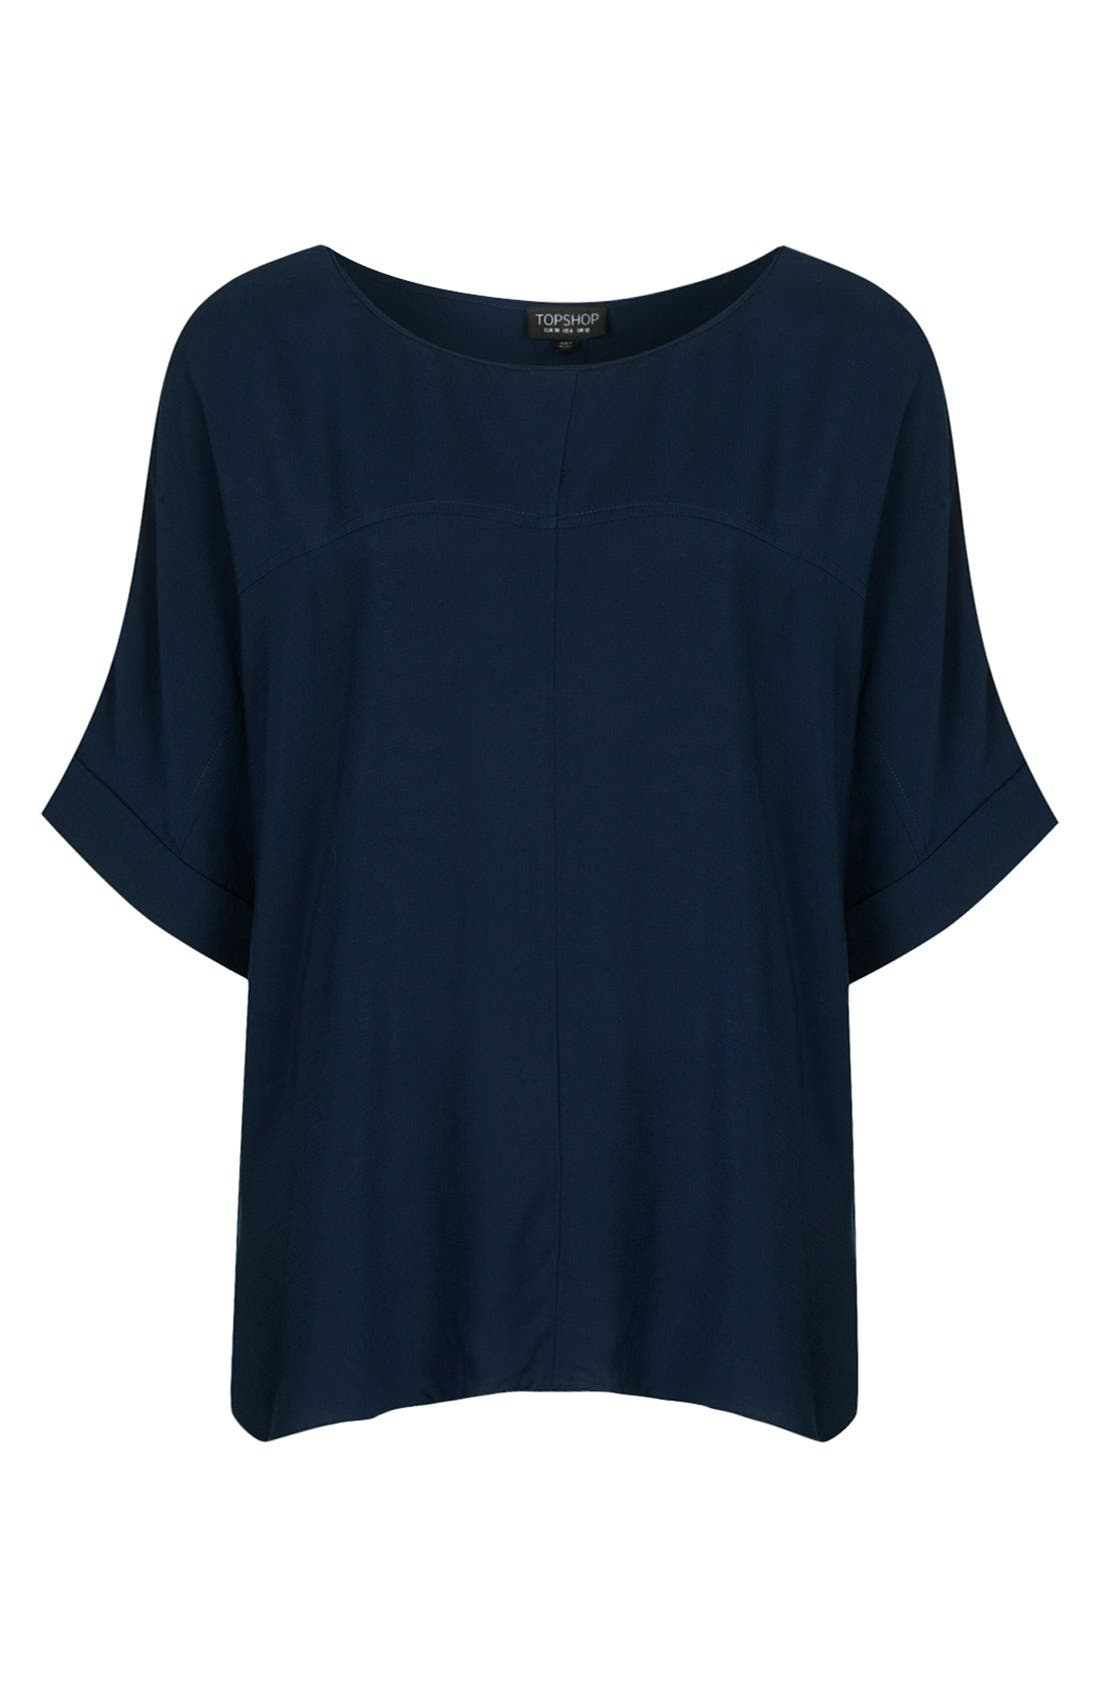 Alternate Image 3  - Topshop Seam Detail Tee